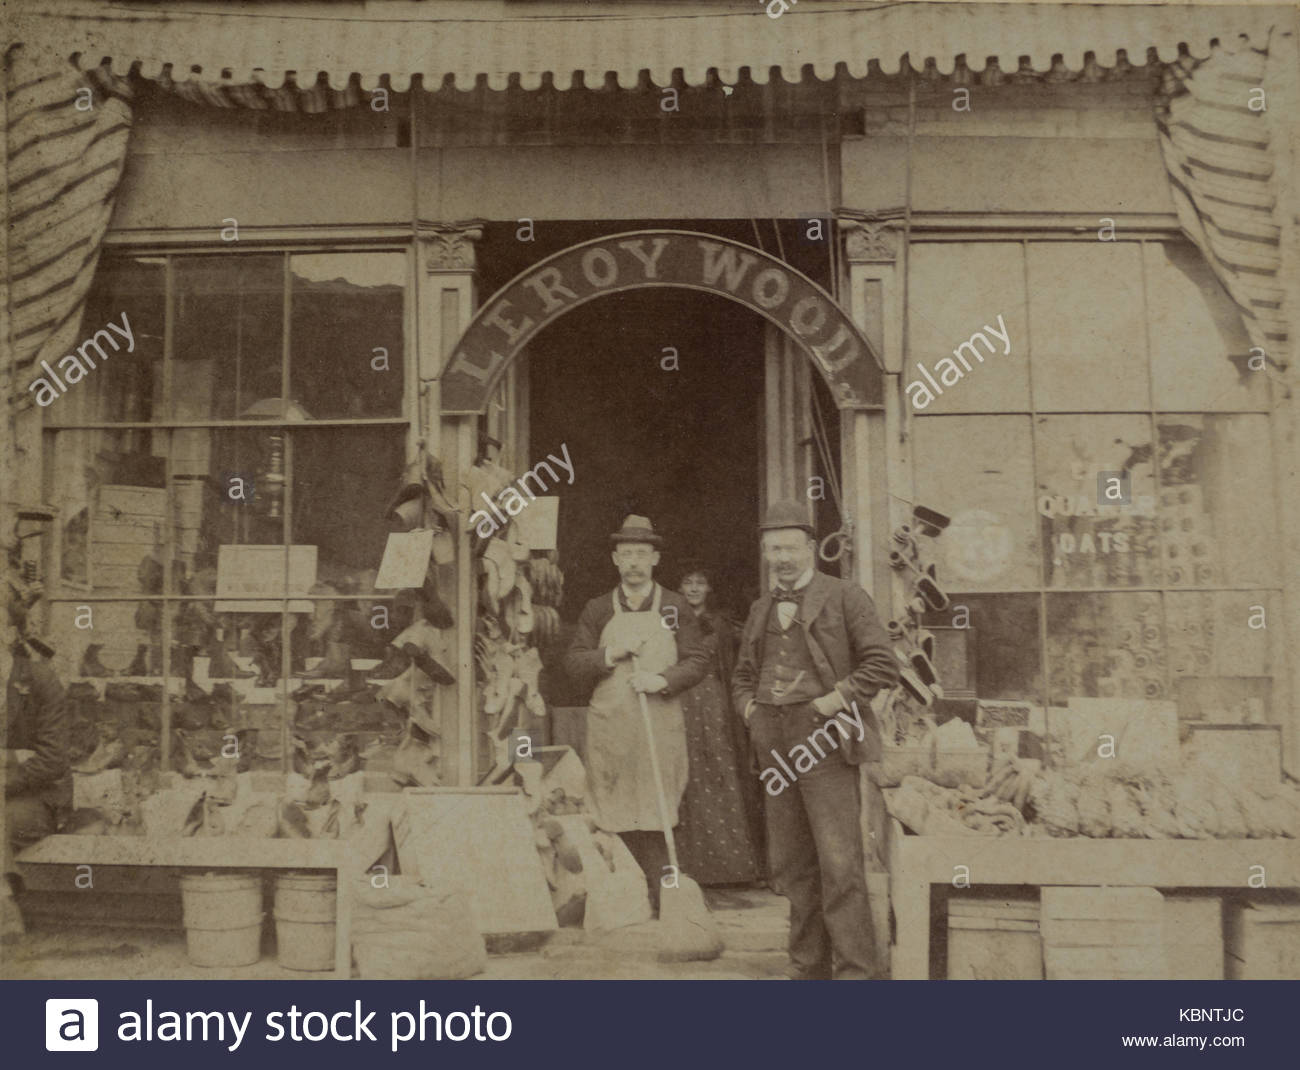 American archive monochrome photo of grocer Shop or General Store front with an arched sign with name Leroy Wood - Stock Image